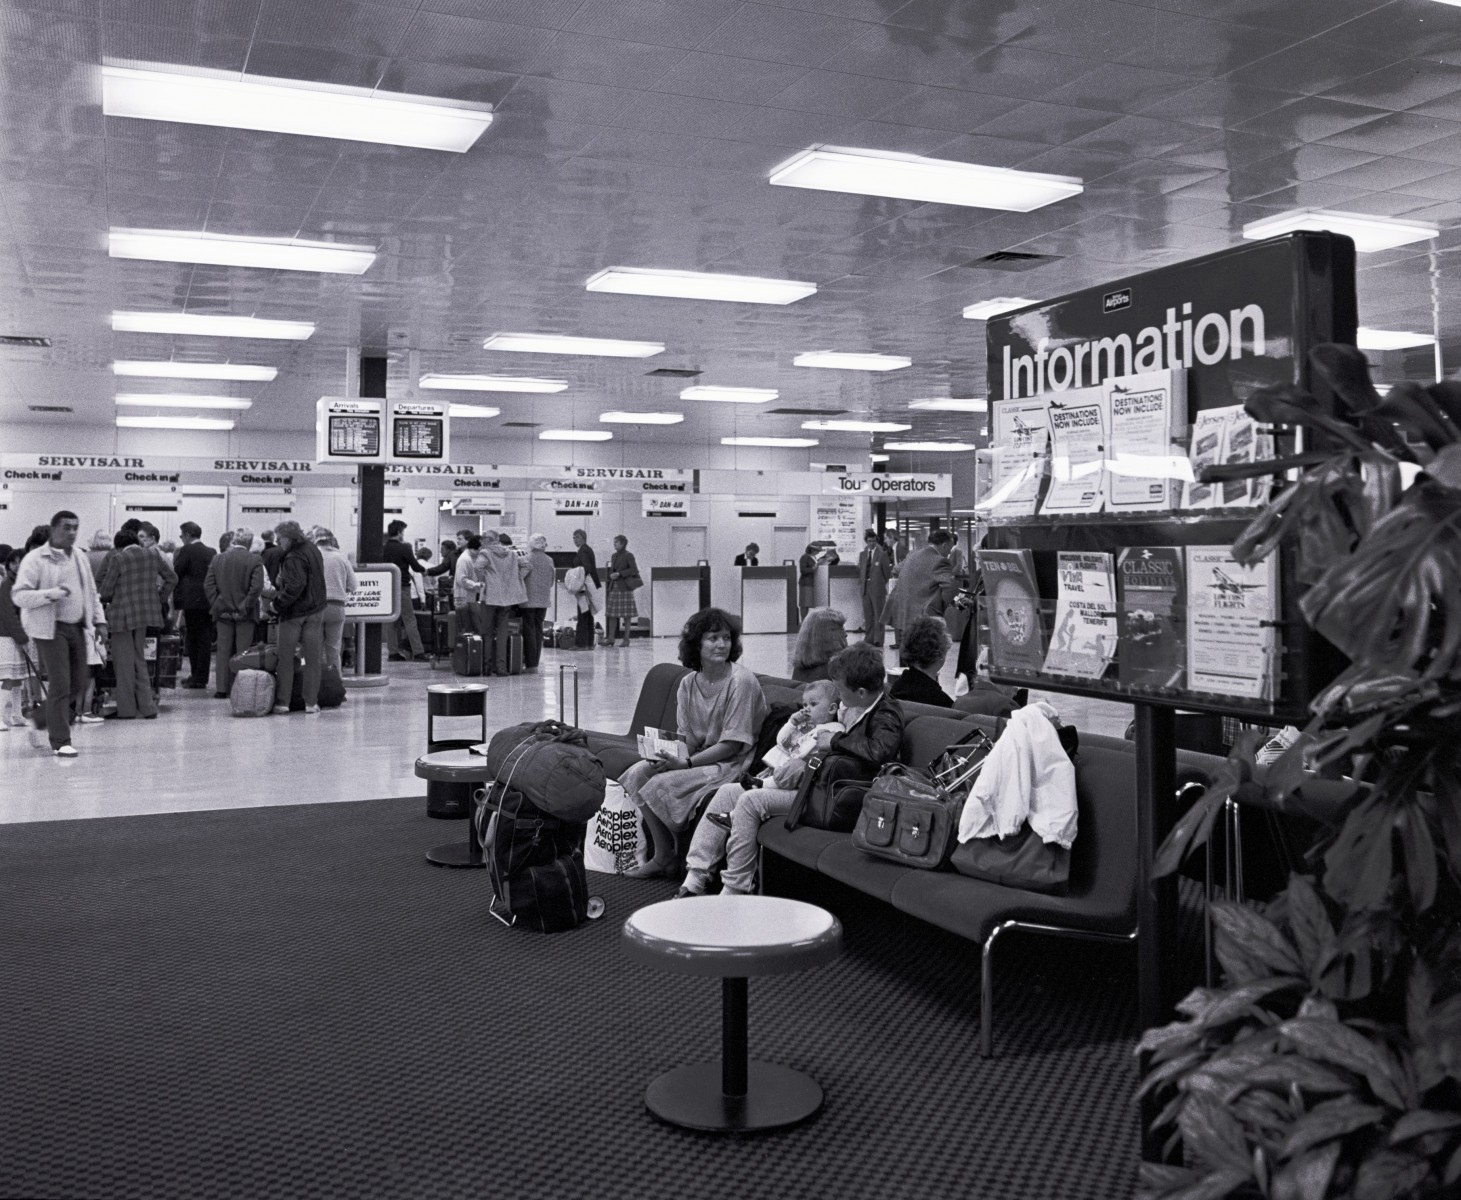 Inside the departure lounge in 1980.